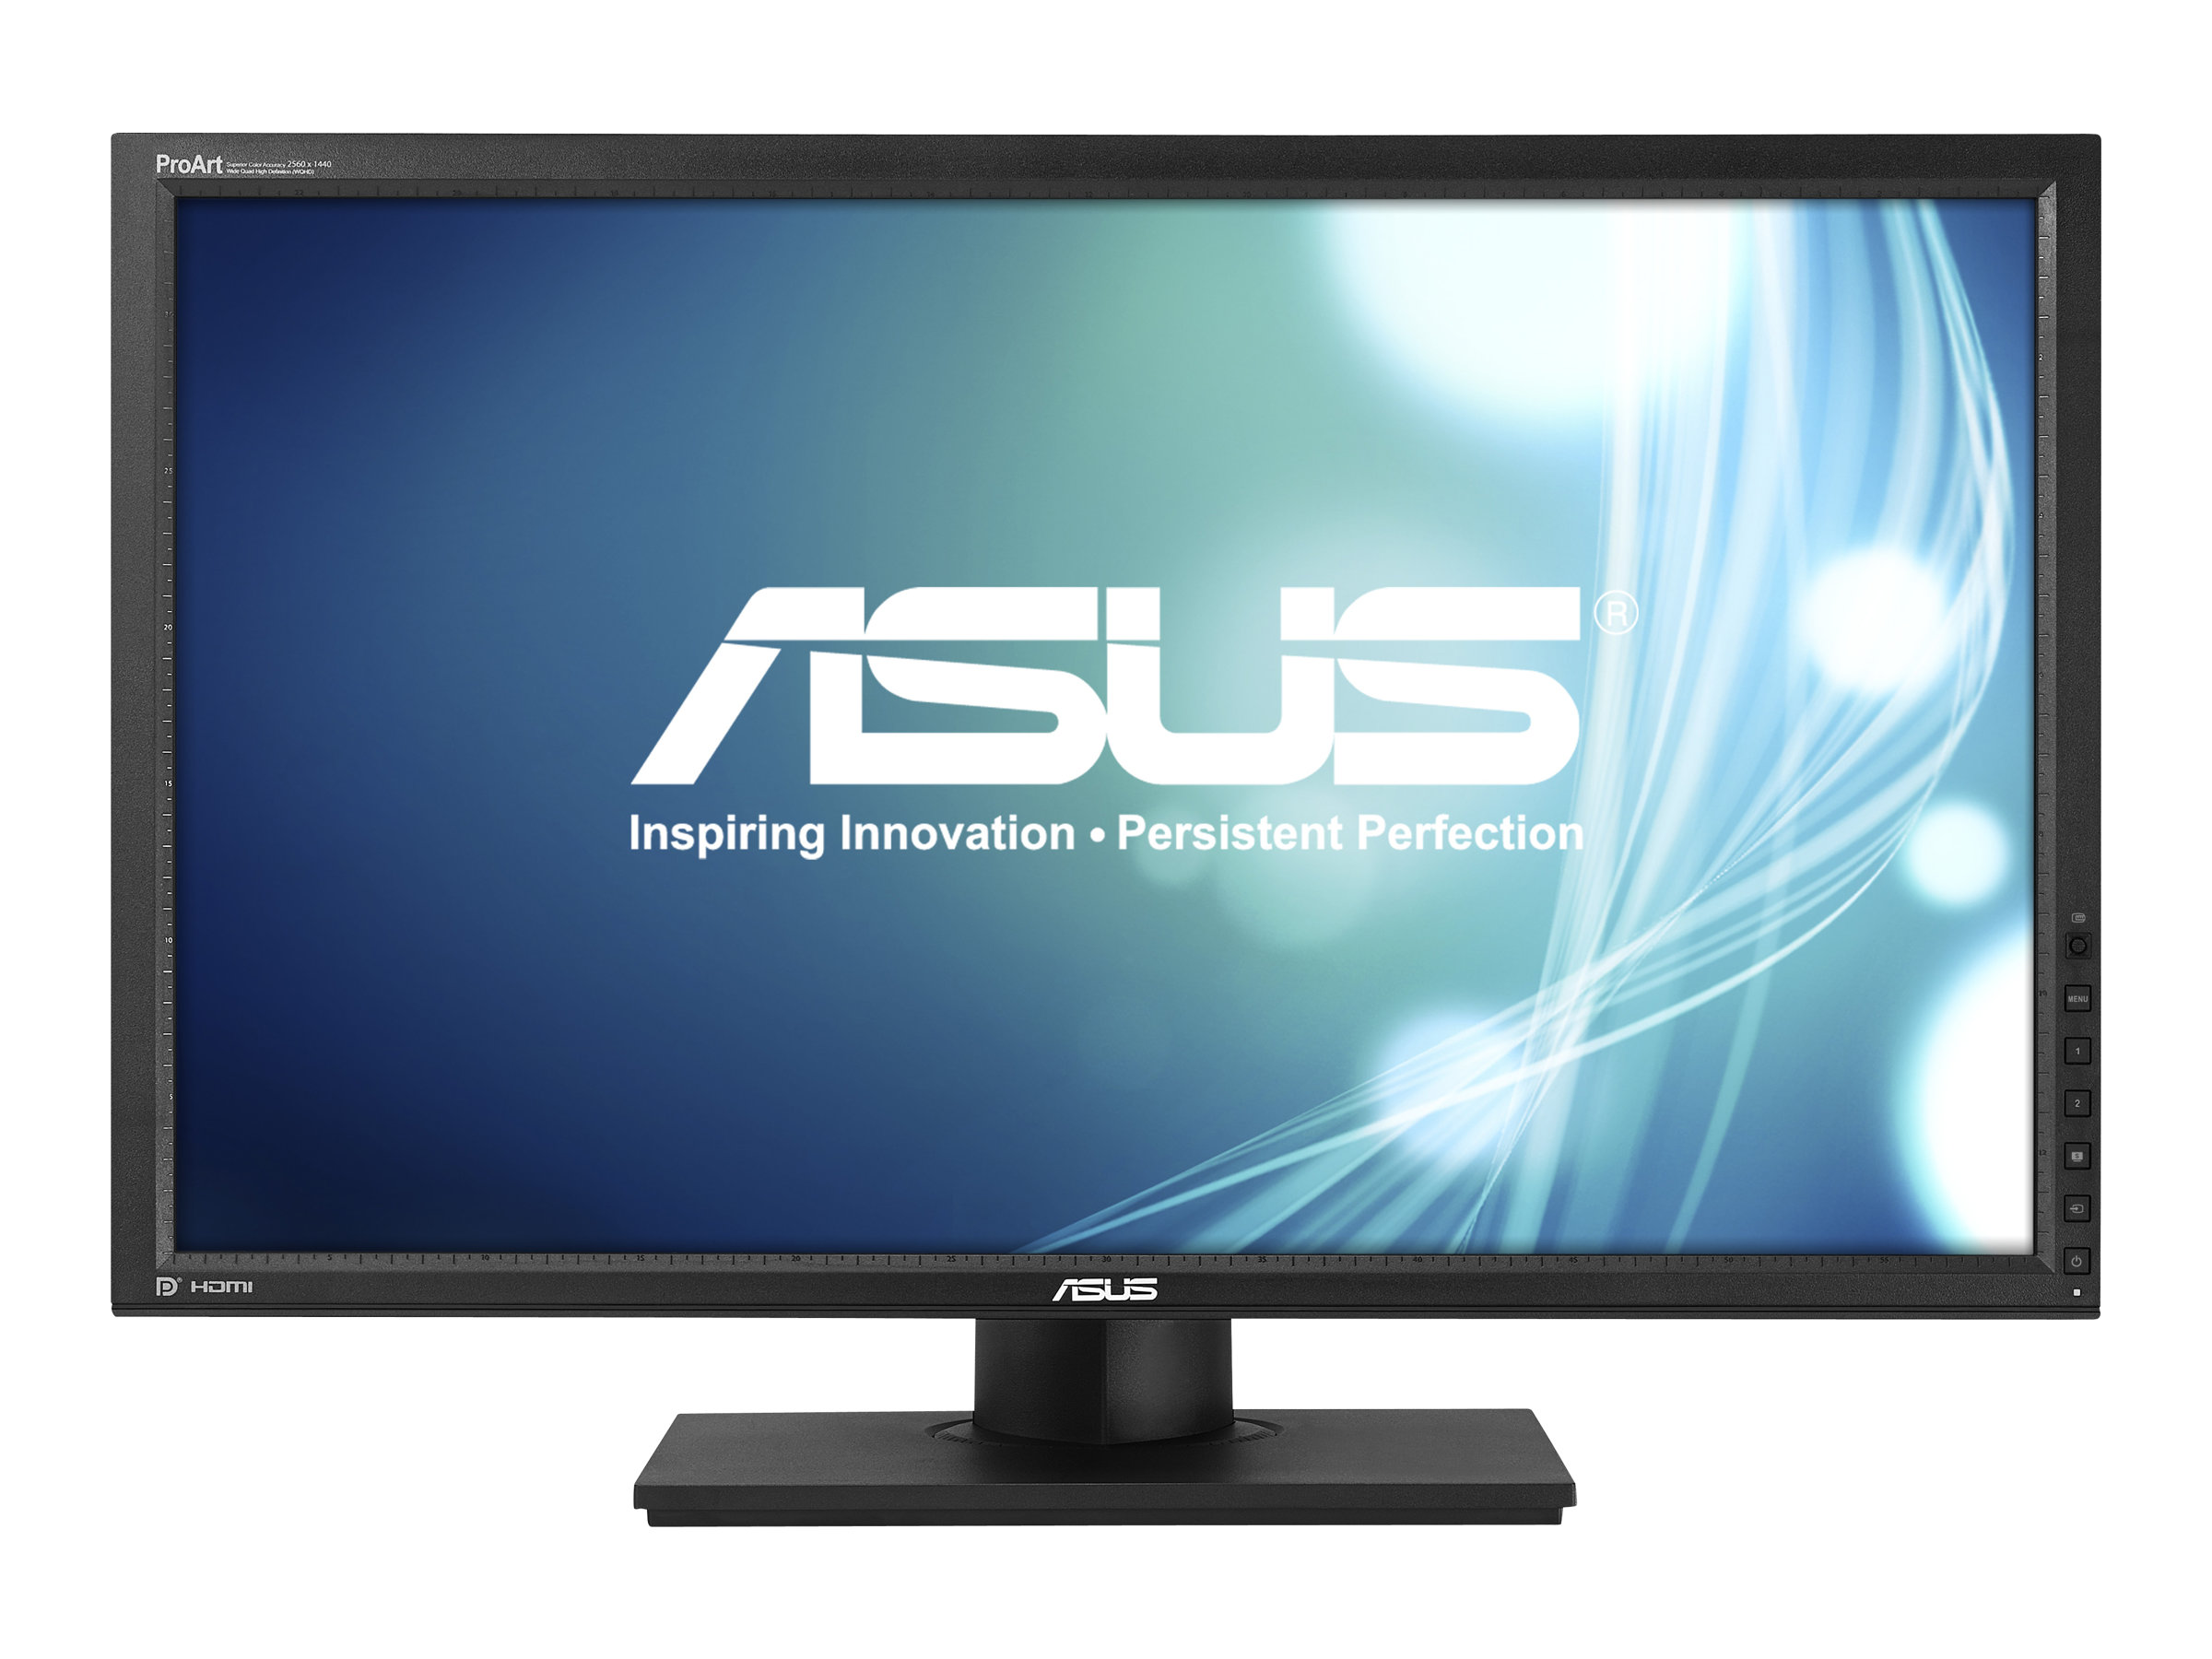 Asus 27 PA279Q LED-LCD Monitor, Black, PA279Q, 16028358, Monitors - LED-LCD